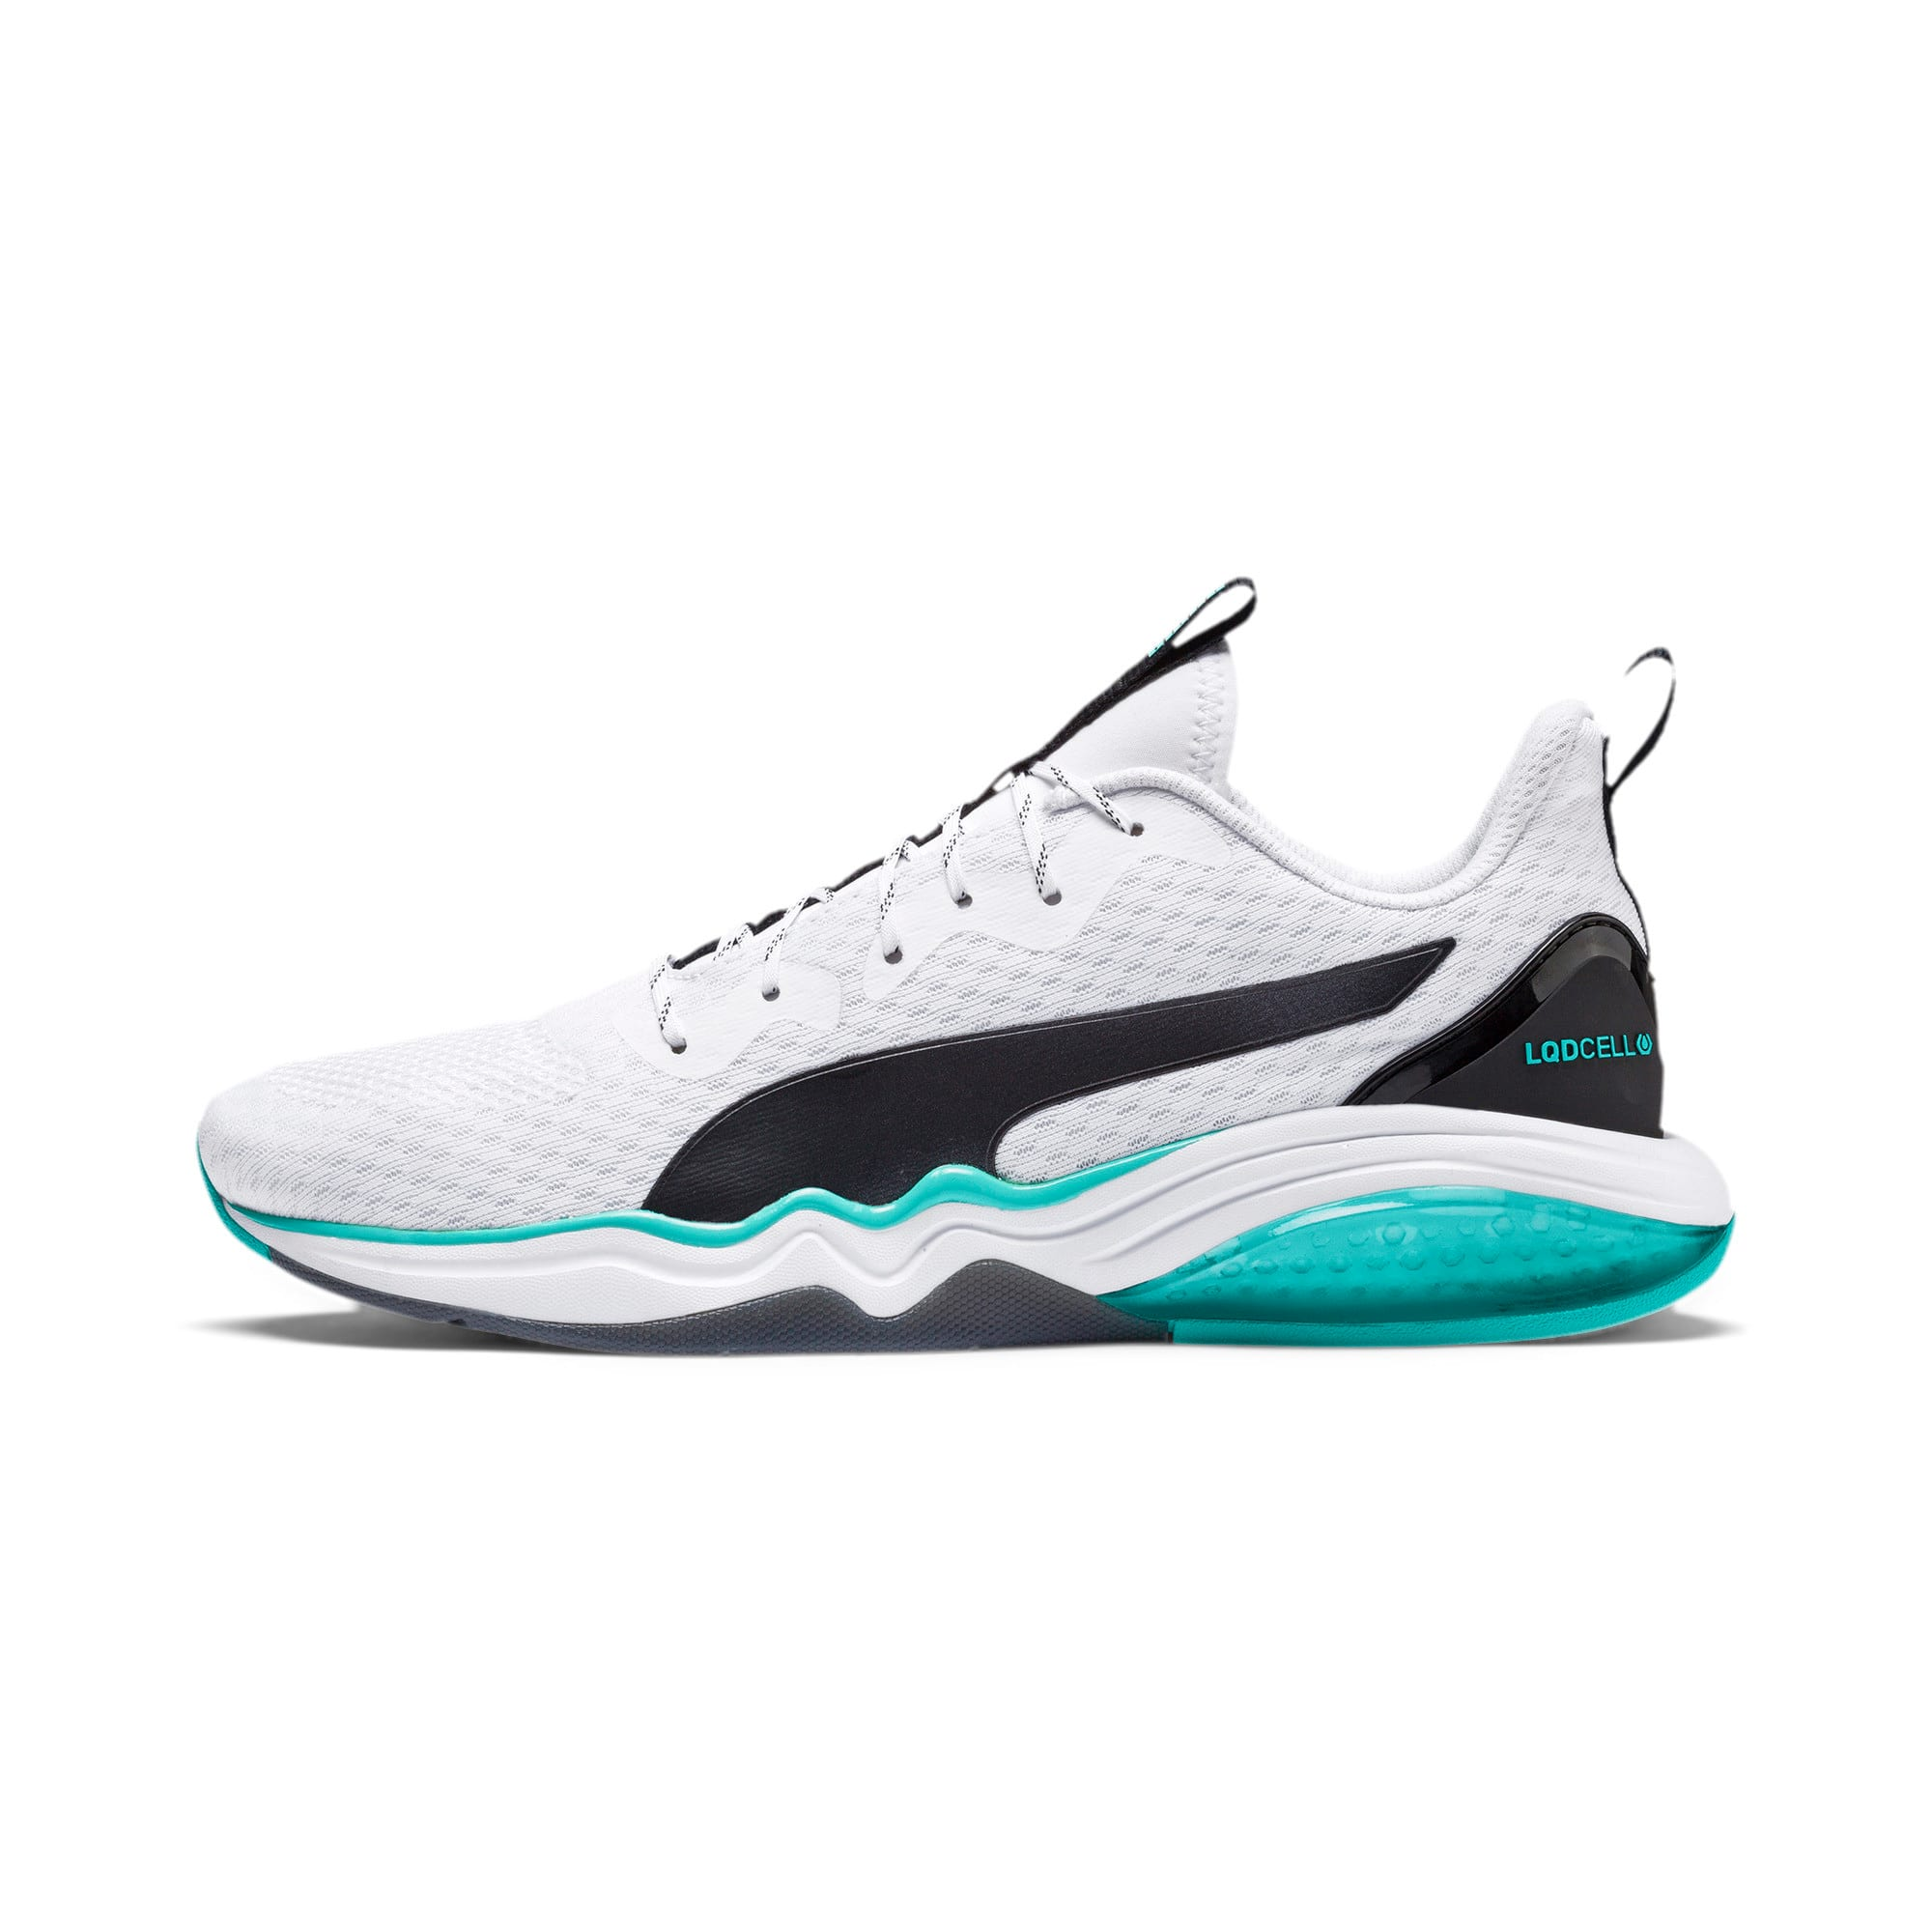 Thumbnail 1 of LQDCELL Tension Men's Training Shoes, Puma White-Blue Turquoise, medium-IND